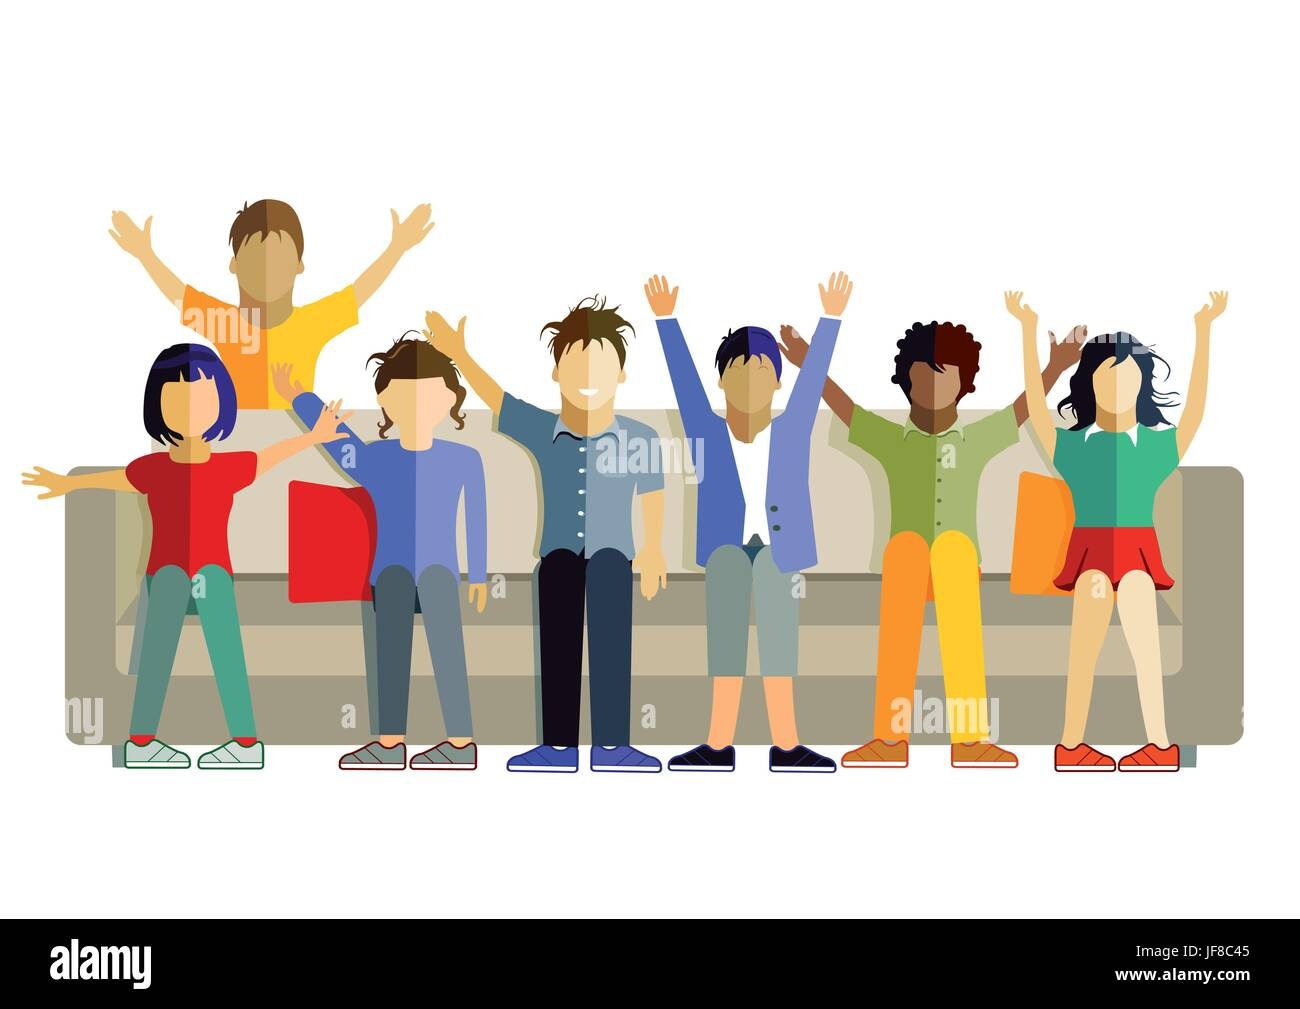 humans, human beings, people, folk, persons, human, human being, motion, Stock Vector